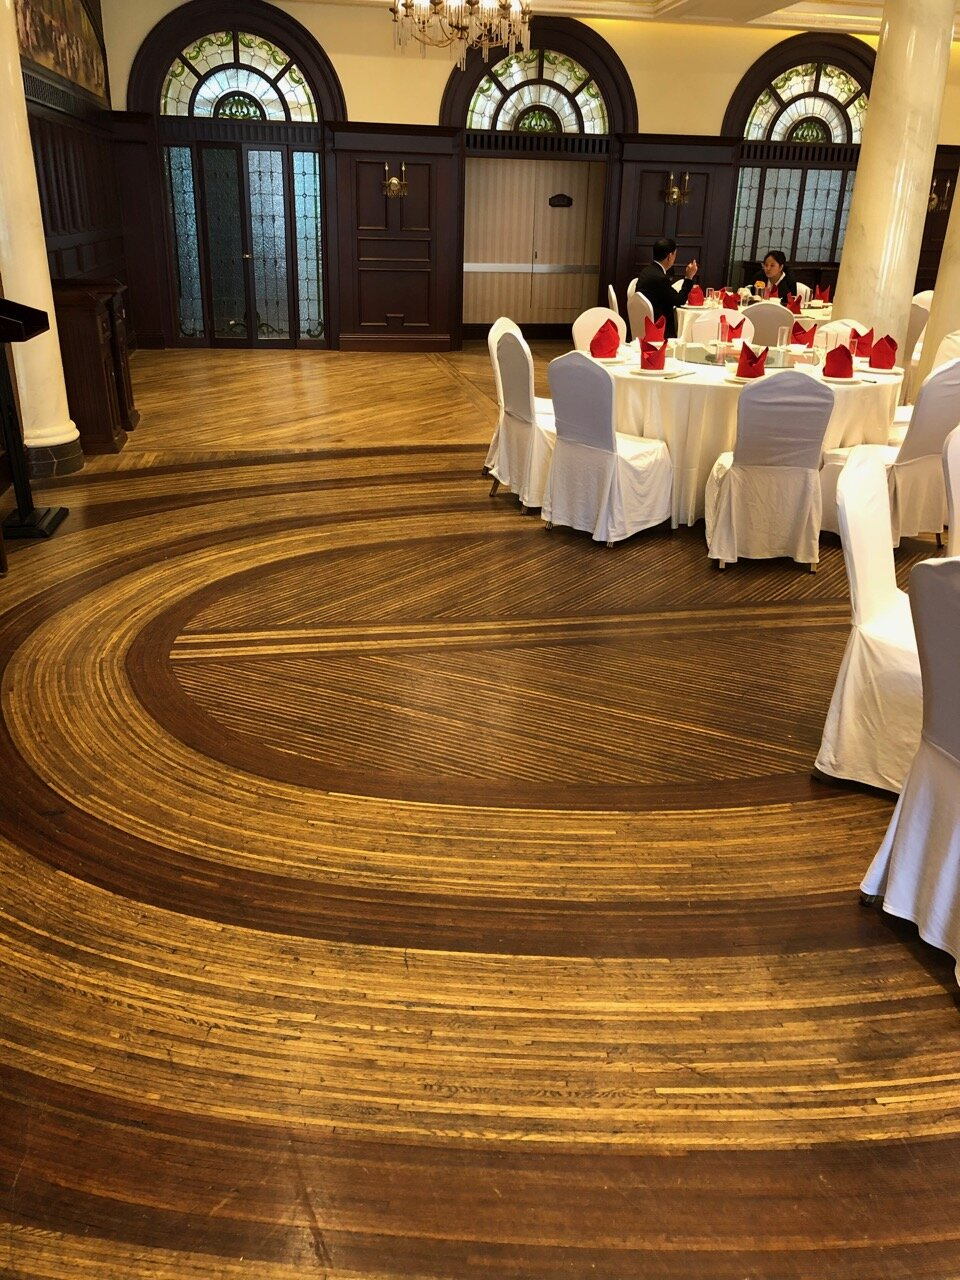 The original floor of the Astor House Ballroom can still be found in the space today. The ingenious design of this floor is described in Alvaro Leonardo's article (see link above)